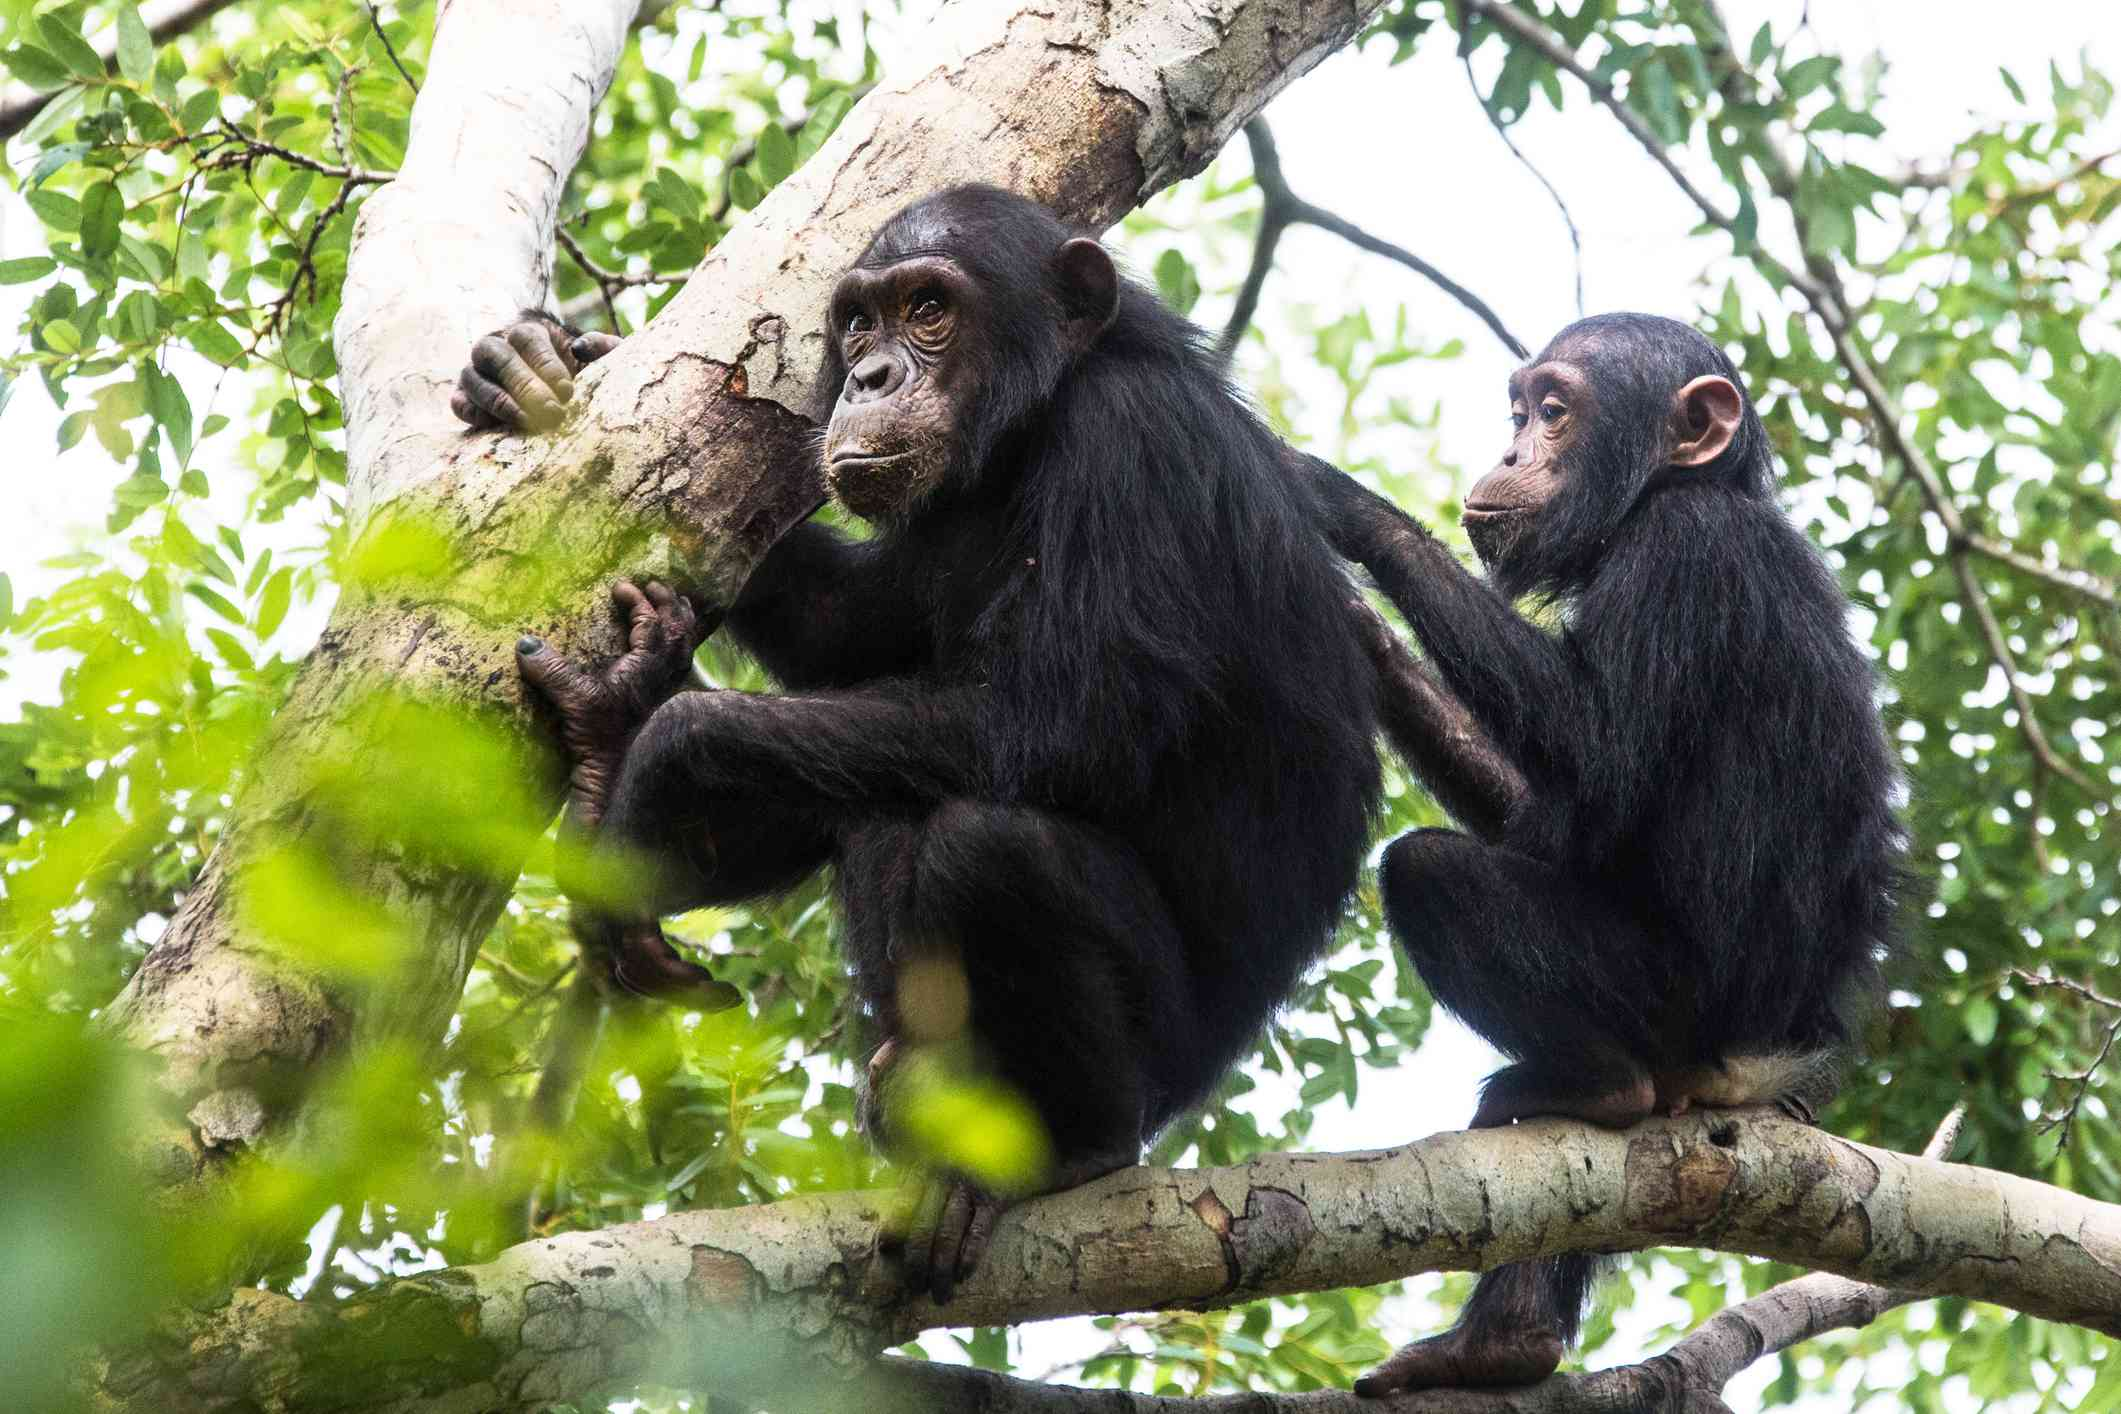 Chimpanzees grooming each other in Gombe National Park